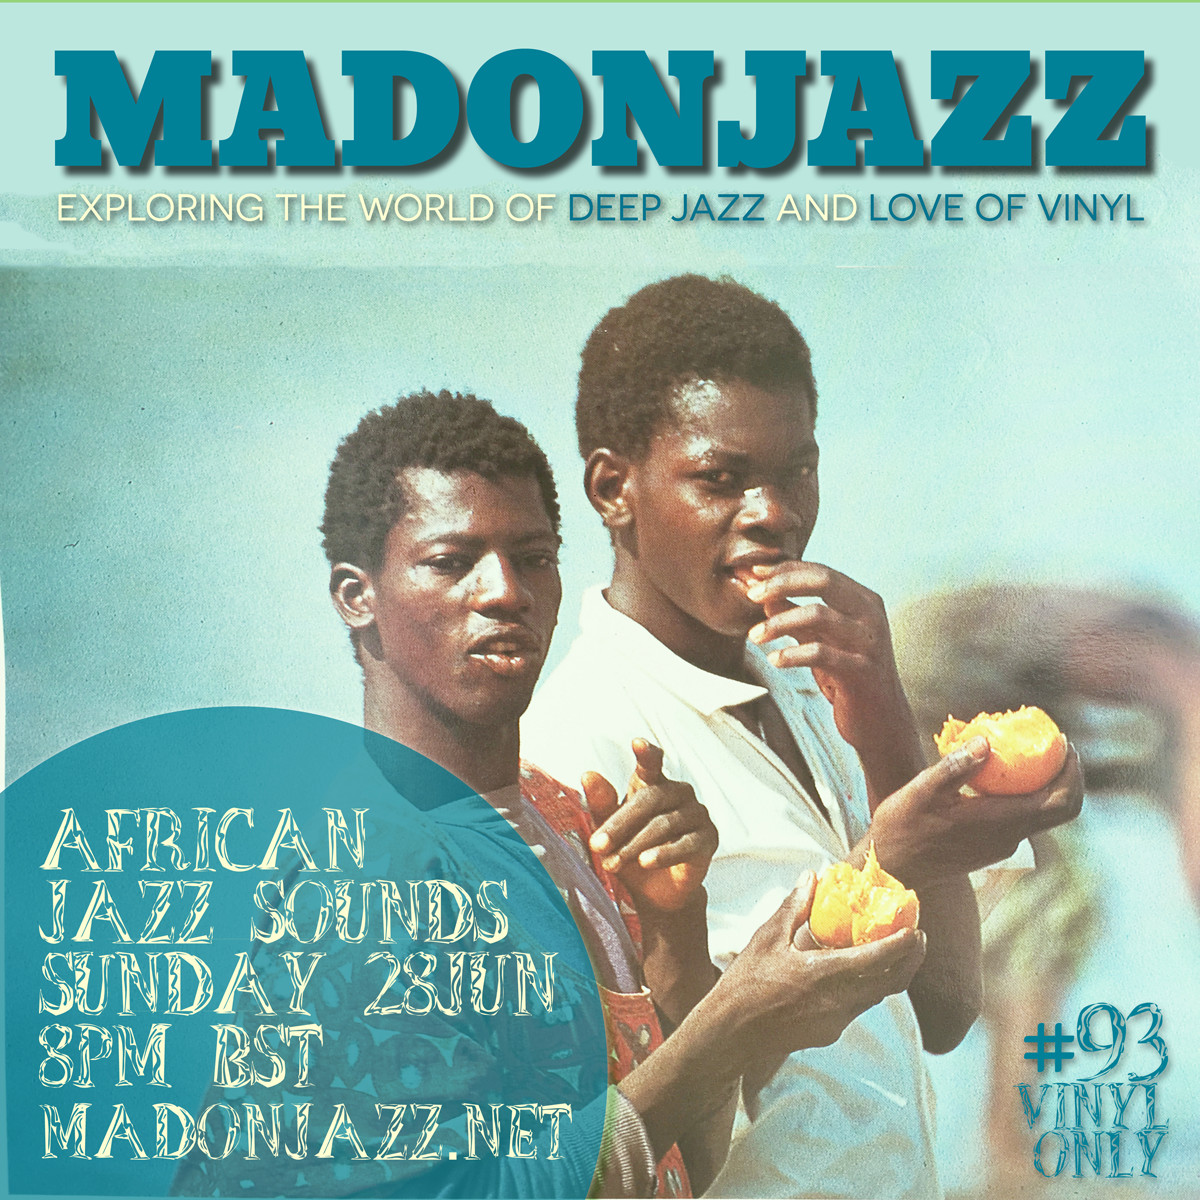 MADONJAZZ AFRICAN JAZZ SOUNDS VINYL